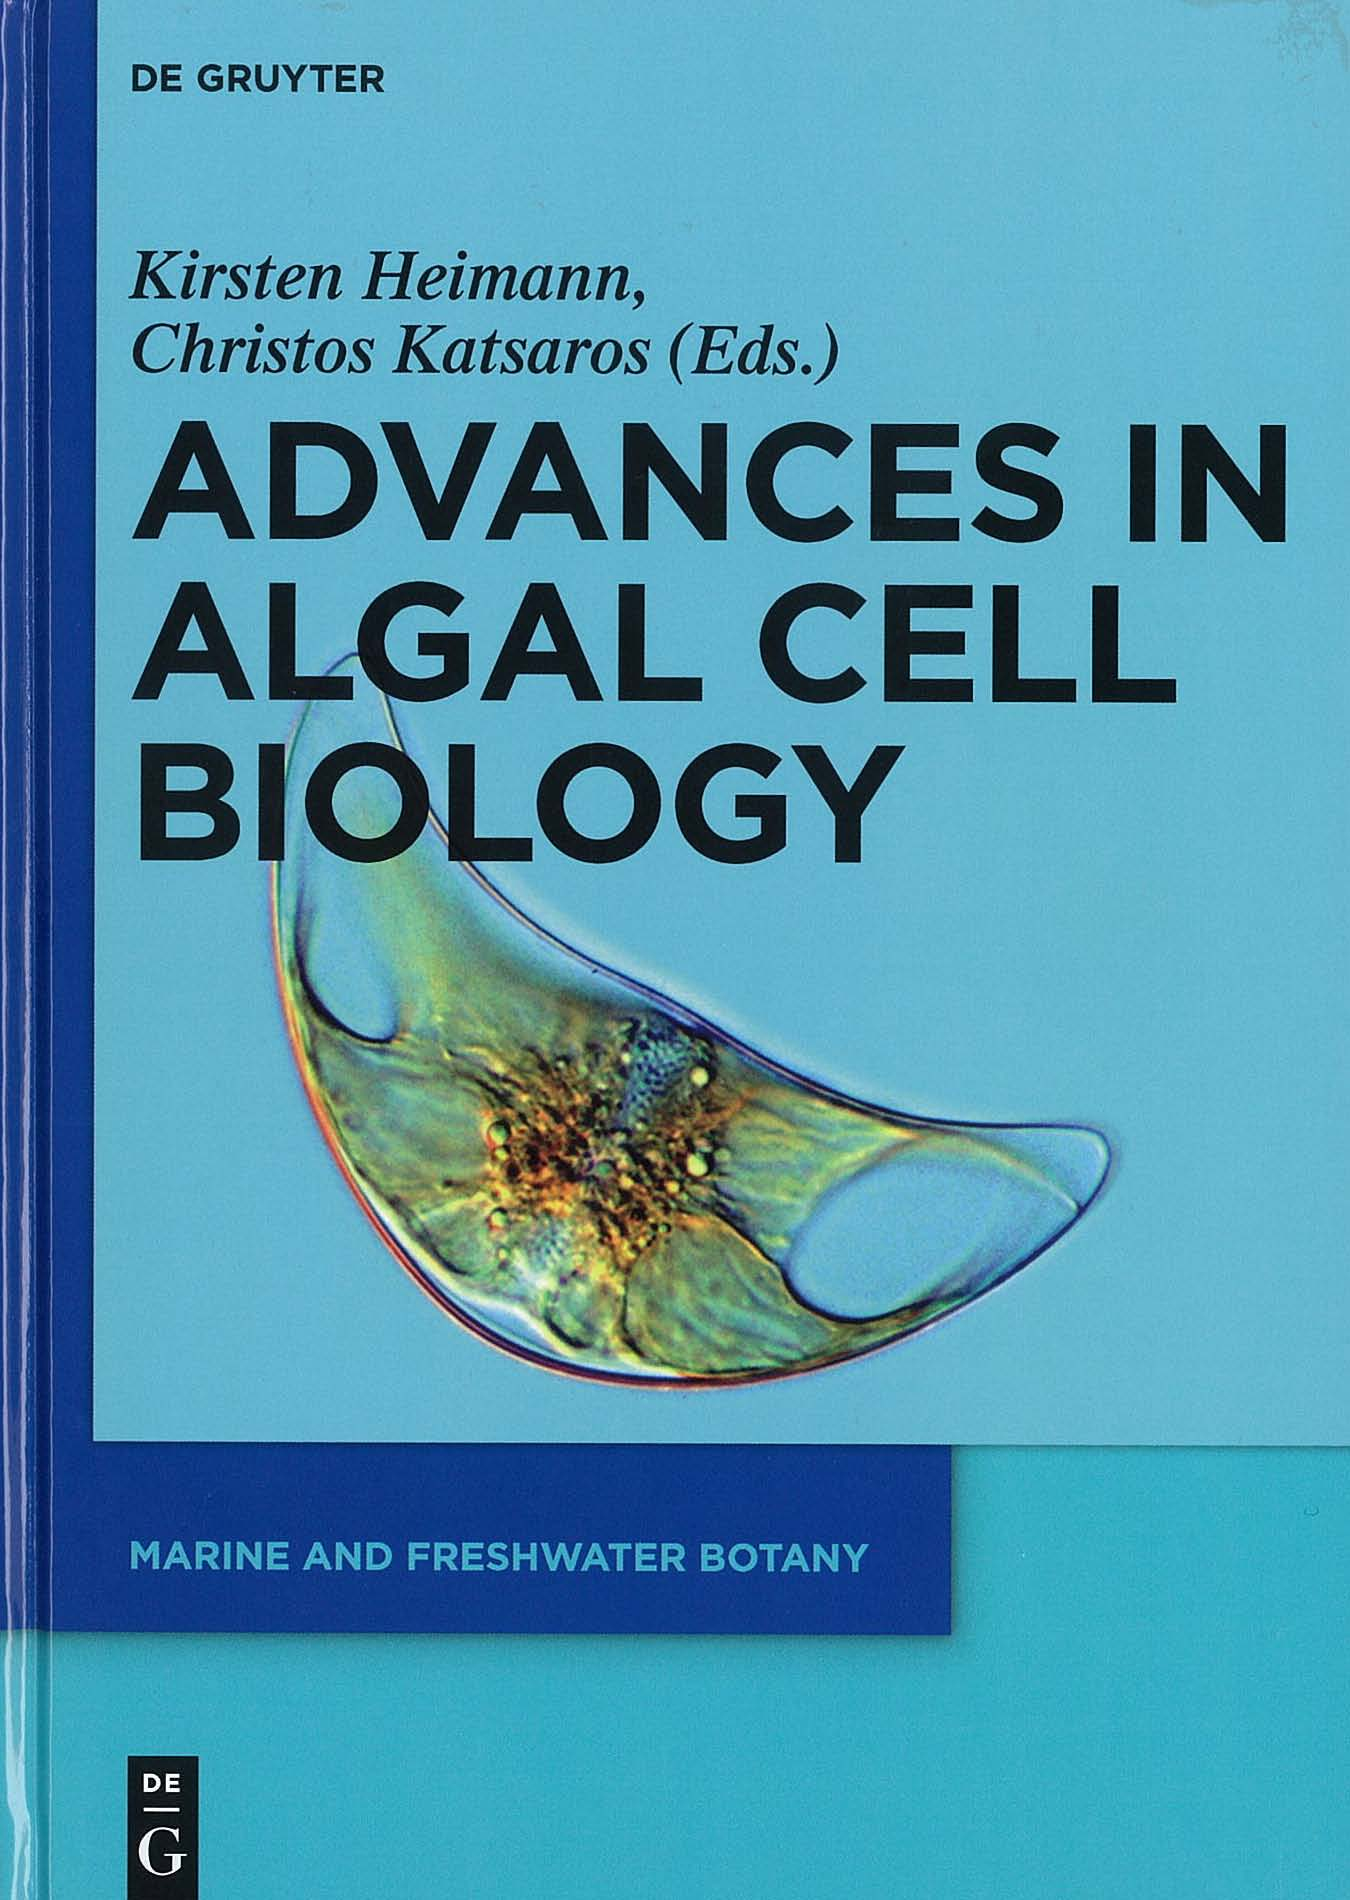 Algal cell biology: important tools to understand metal and